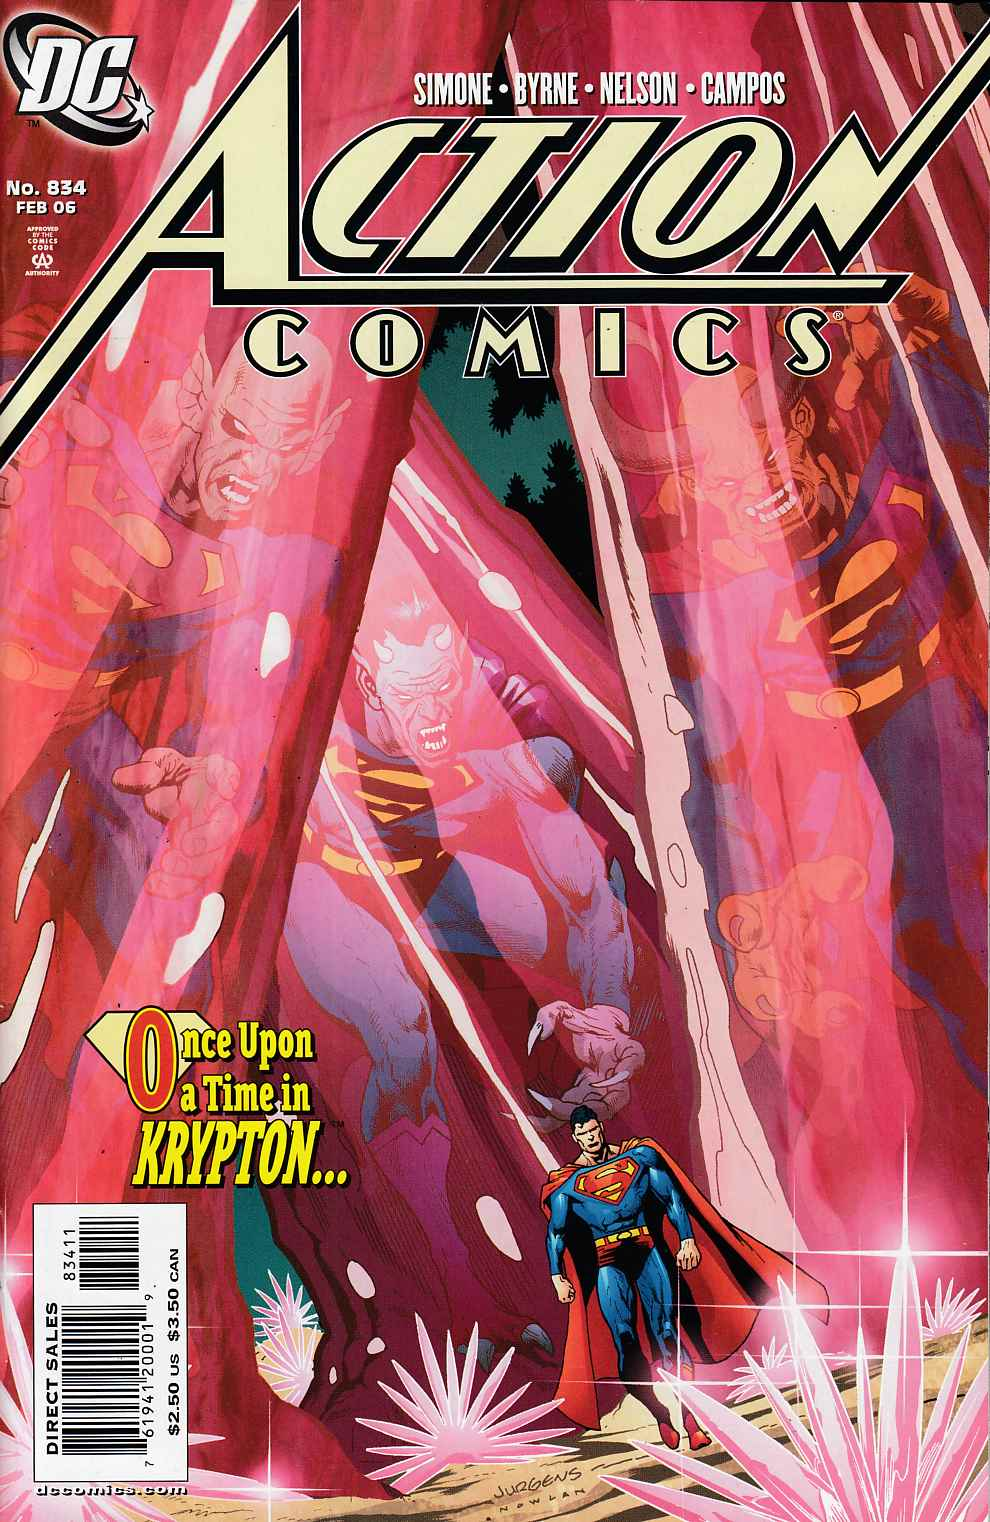 Action Comics #834 Near Mint (9.4) [DC Comic]